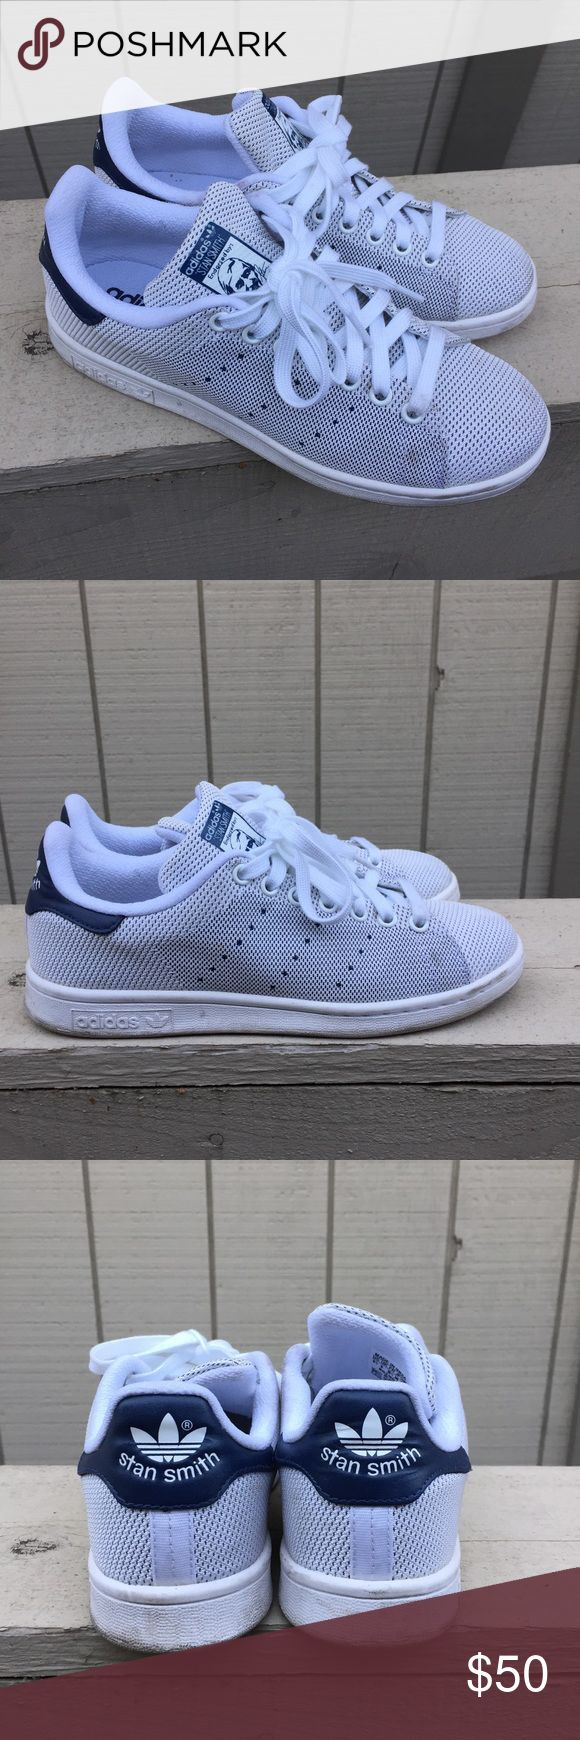 ADIDAS ORIGINALS Stan Smith Weave Sneakers Size 6 Worn but still in good condition, please see pics for details. Lighting is a little off, body of the sneakers are actually white! US SIZE 6.5 (Men's), UK 6, EUR 39.5. Adidas sizing are a little different, please confirm your adidas stan smith sizing before purchasing! Adidas Shoes Sneakers